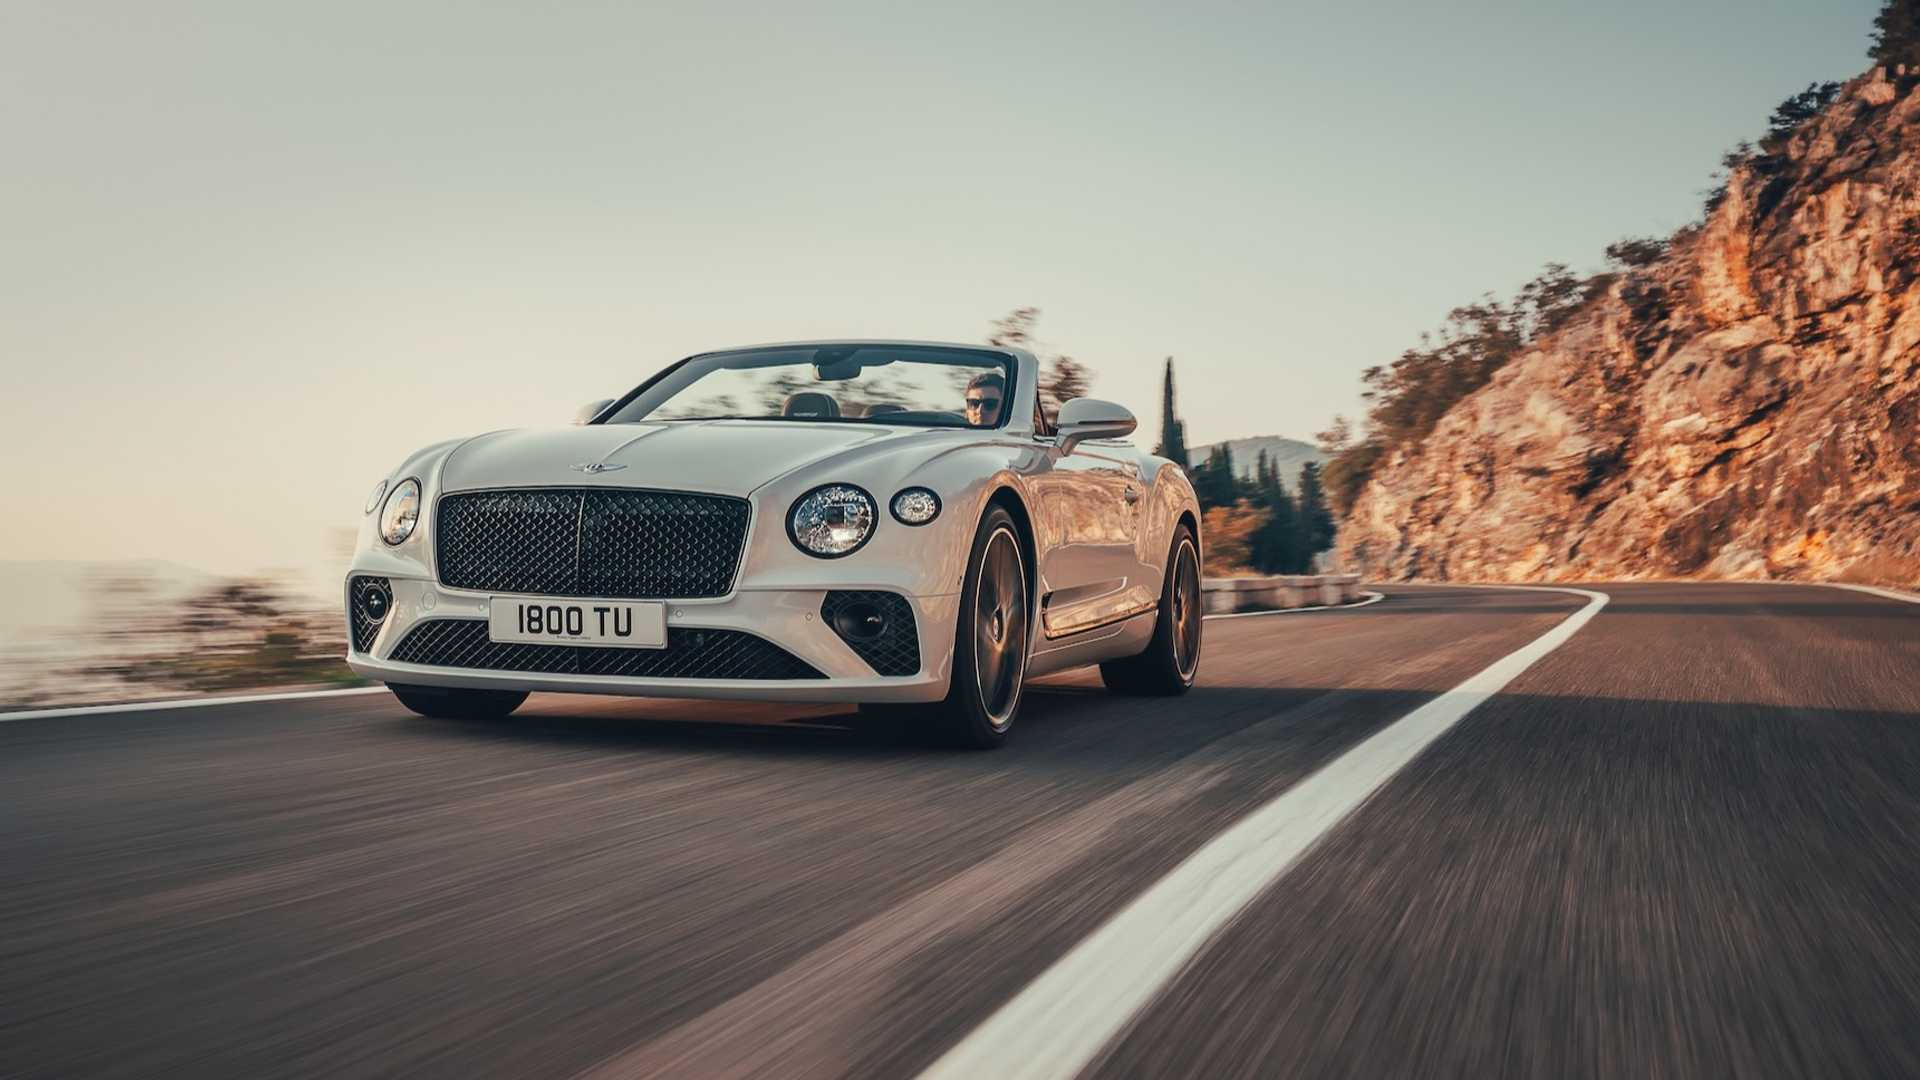 2019-bentley-continental-gt-convertible-unveiled-207-mph-luxury-droptop (2)